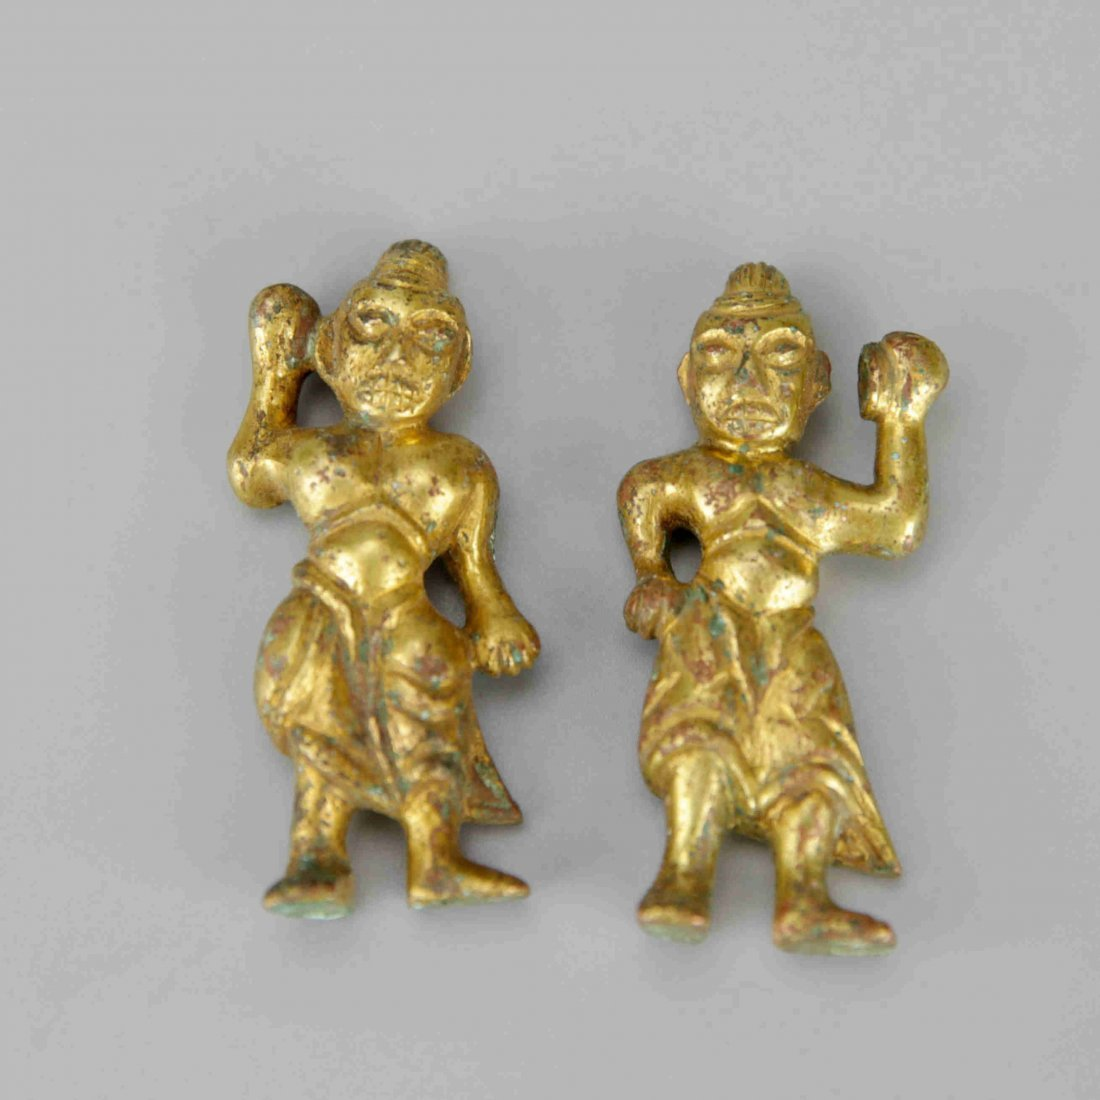 Pair of Small Chinese Gilt-Bronze Figures